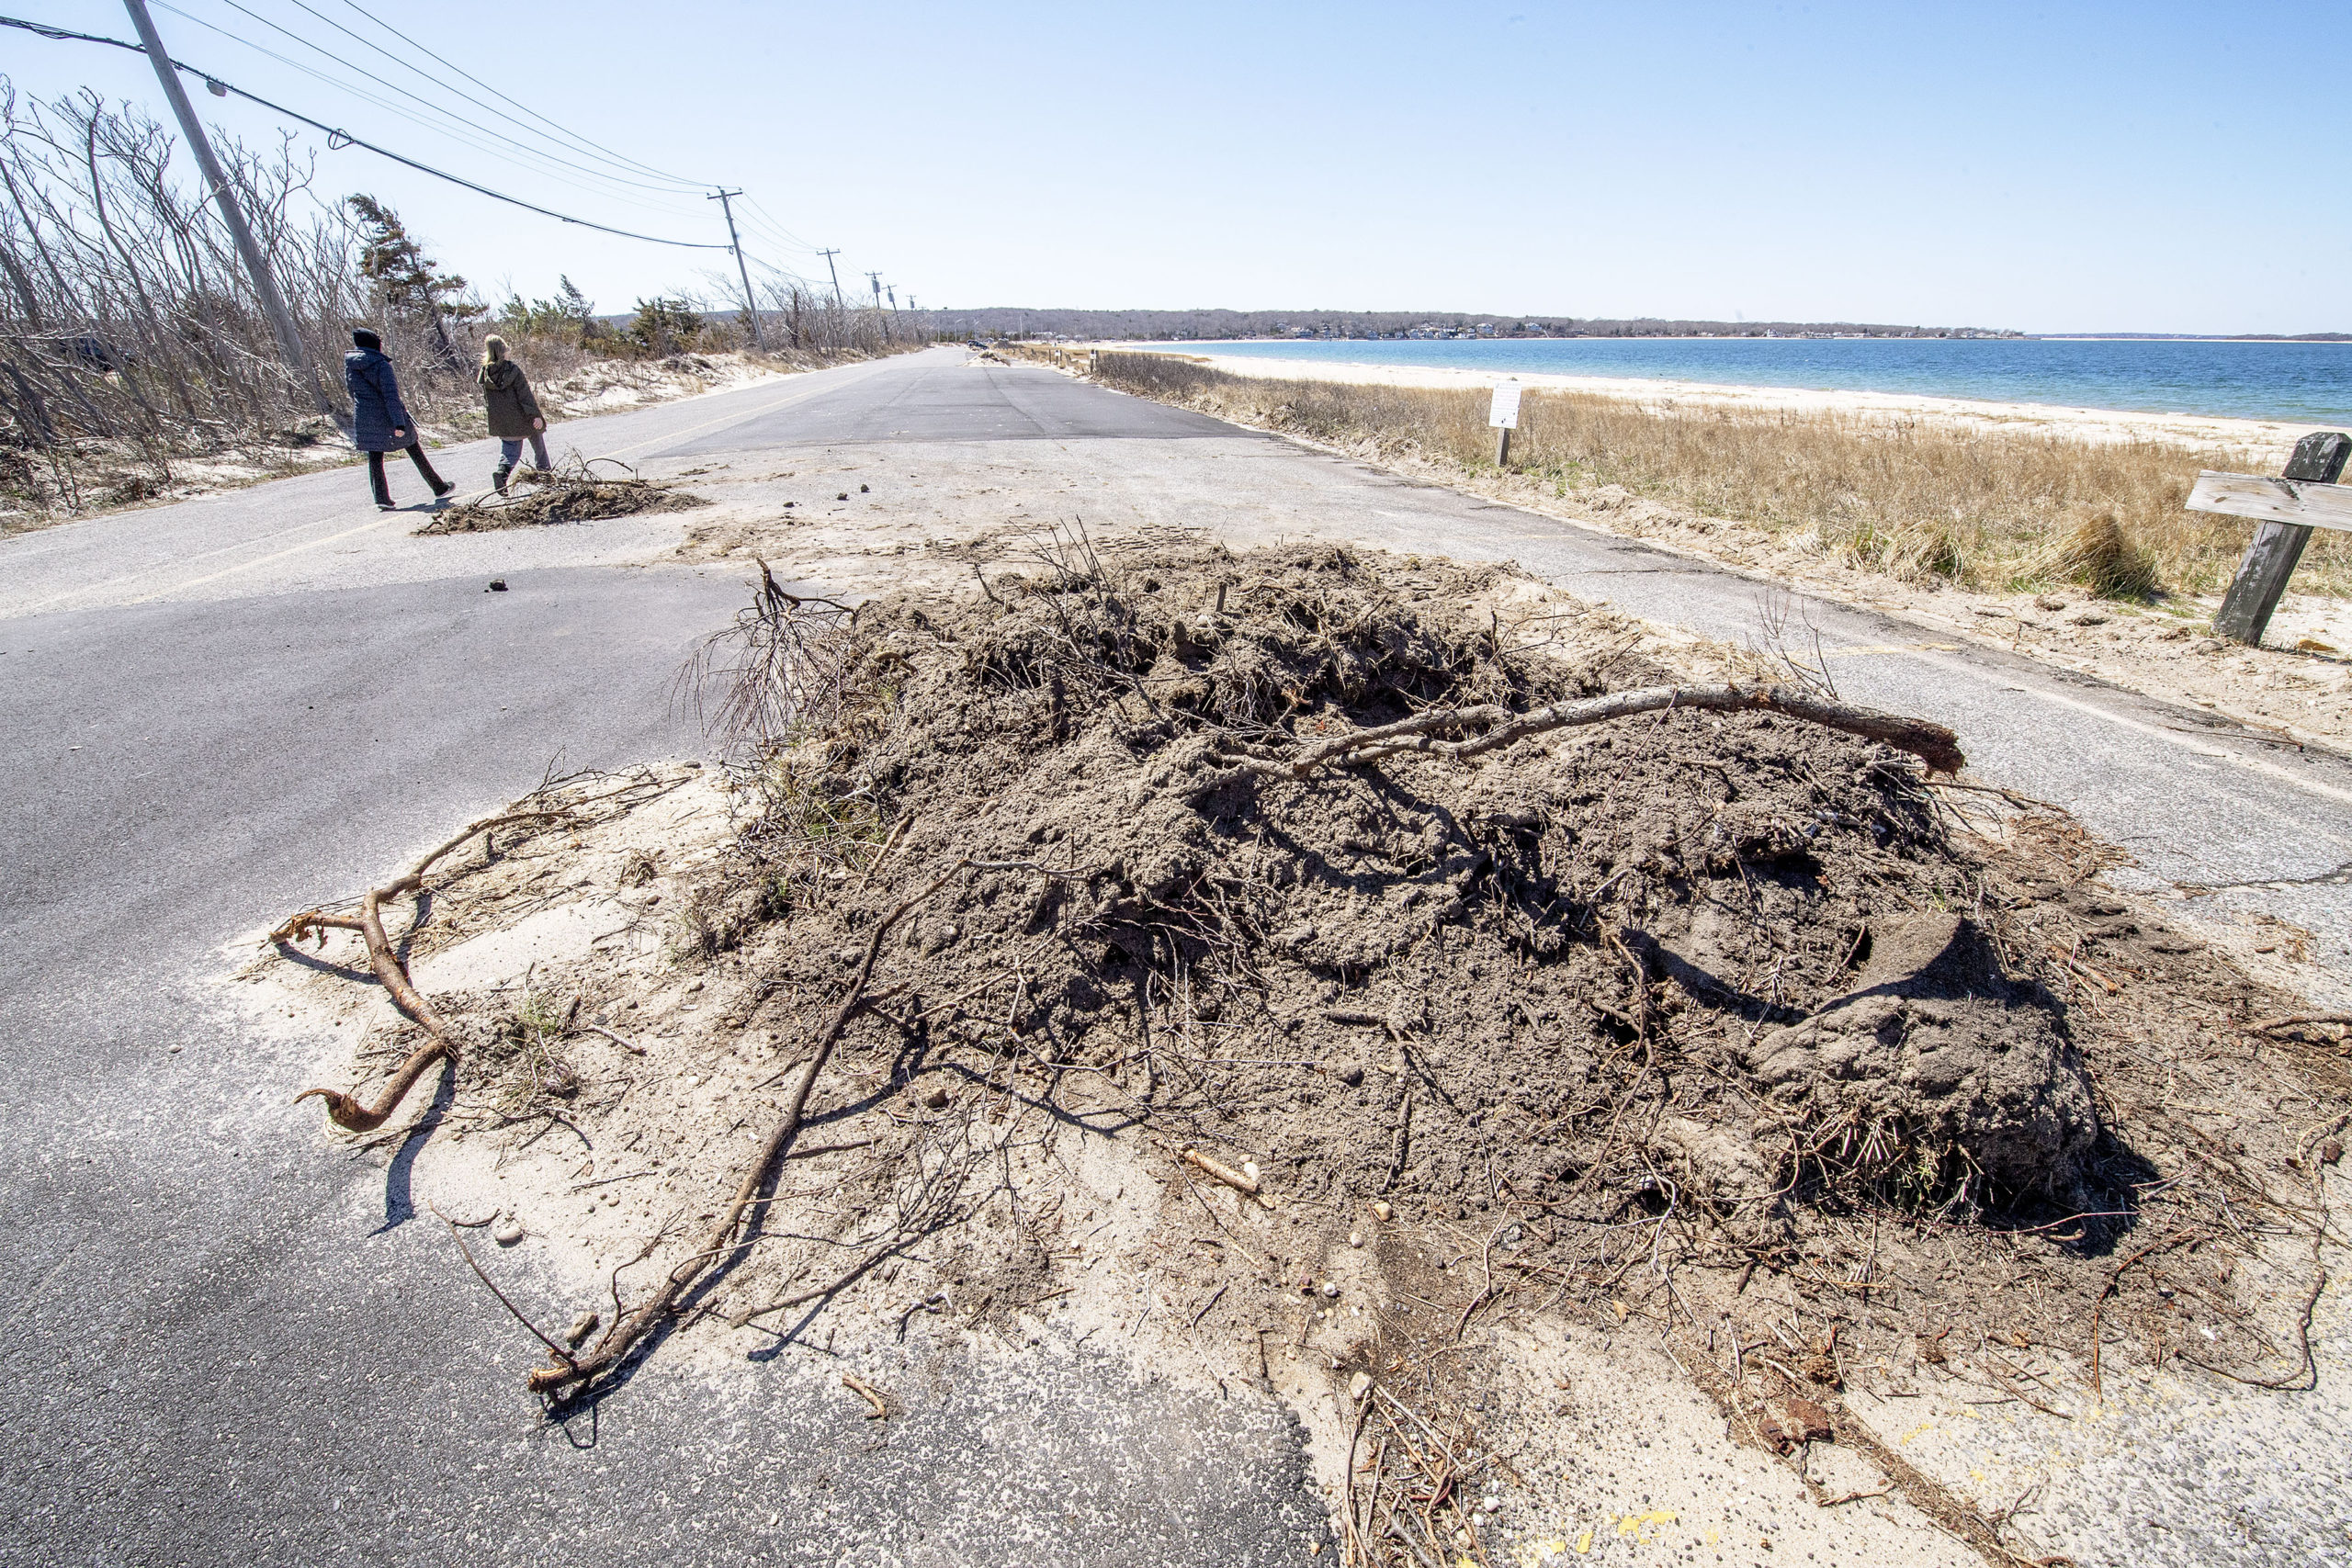 The clearing of vegetation along the border of the parking lot at Long Beach in Noyac has resulted in demands that the area be restored. MICHAEL HELLER